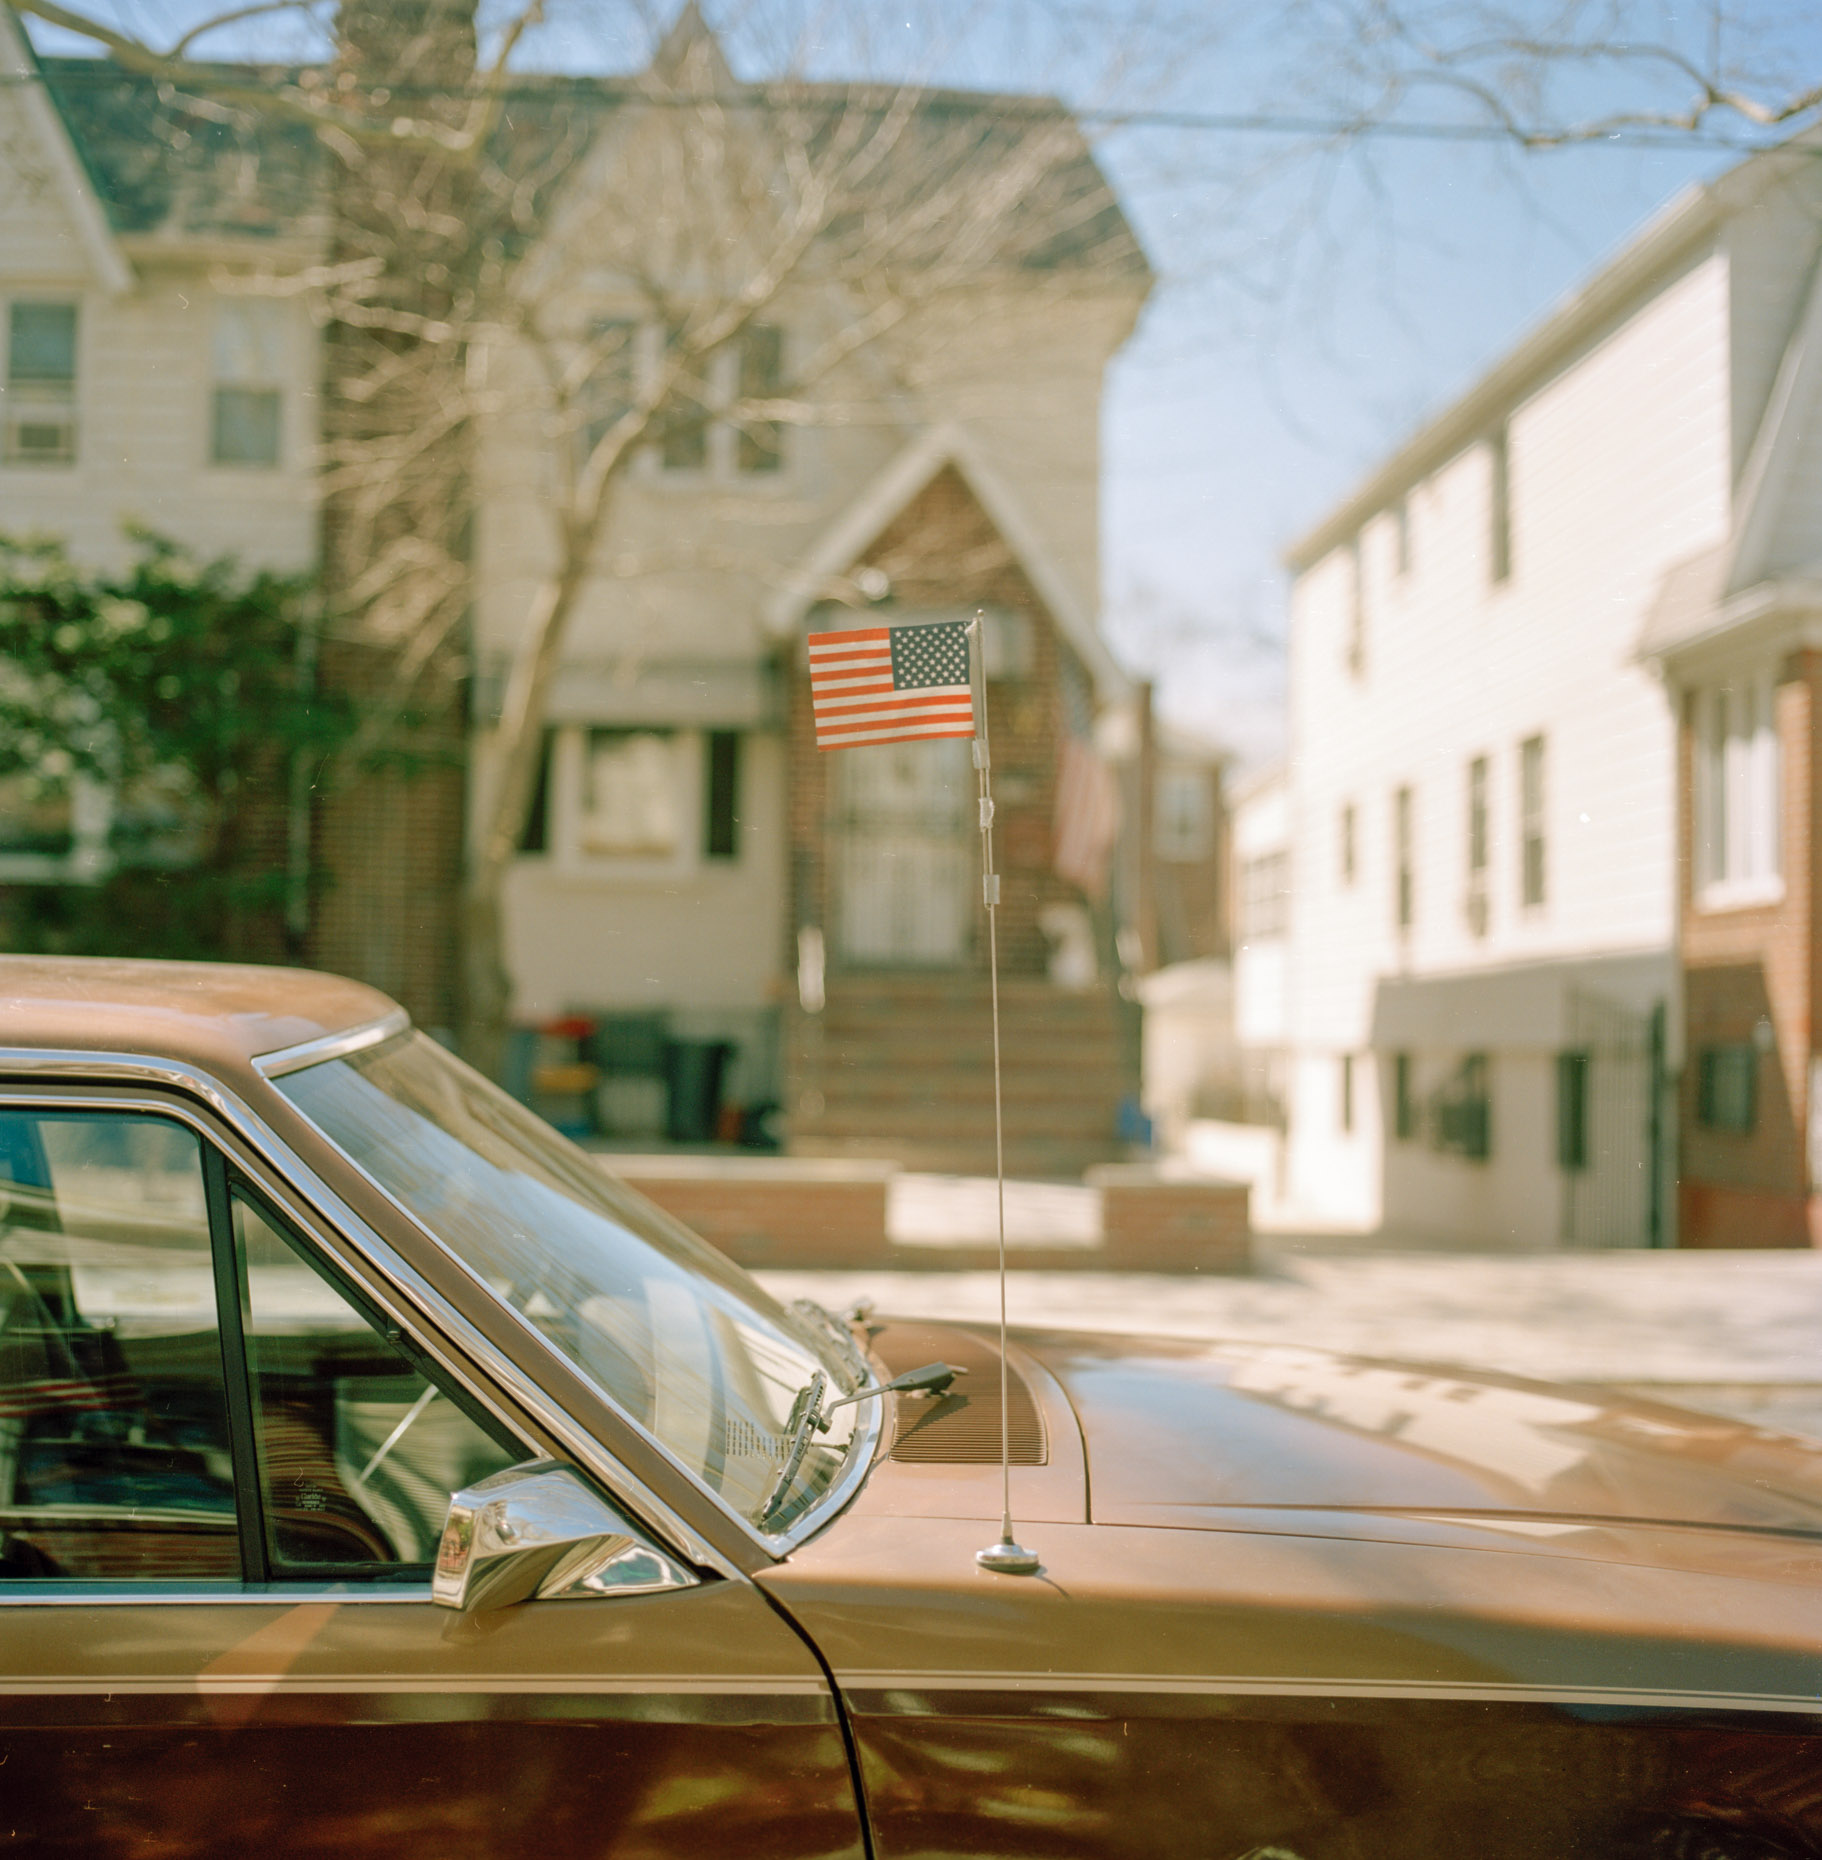 A vintage car displays an US flag in Midwood, Brooklyn.